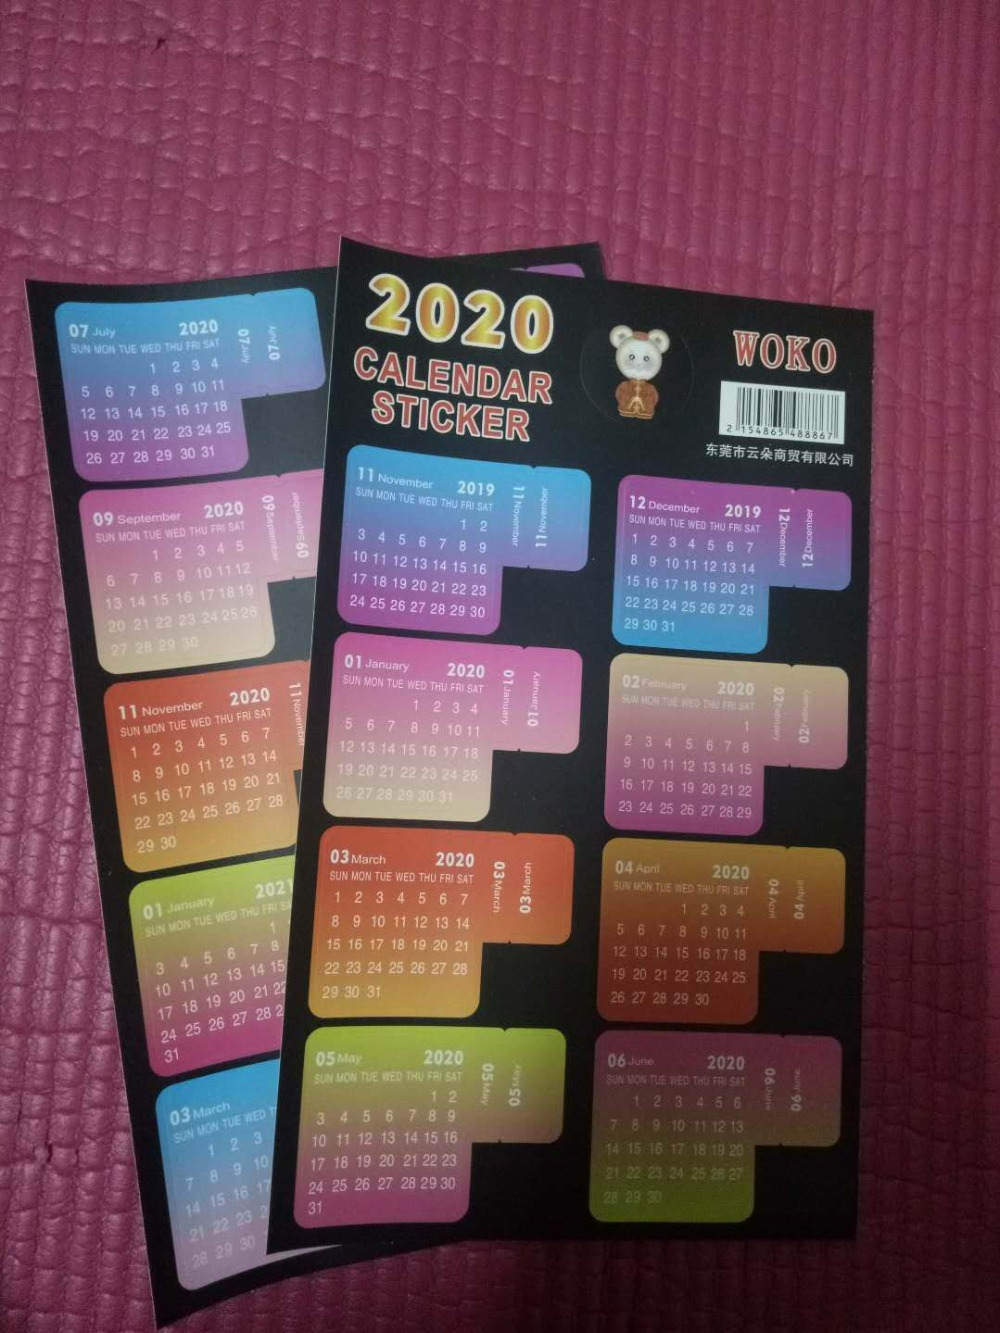 New 2019-2020 Years Calendar Handwritten Calendar Notebook Index Label Sticker Calendar Sticker Organizer Kawaii Stationery